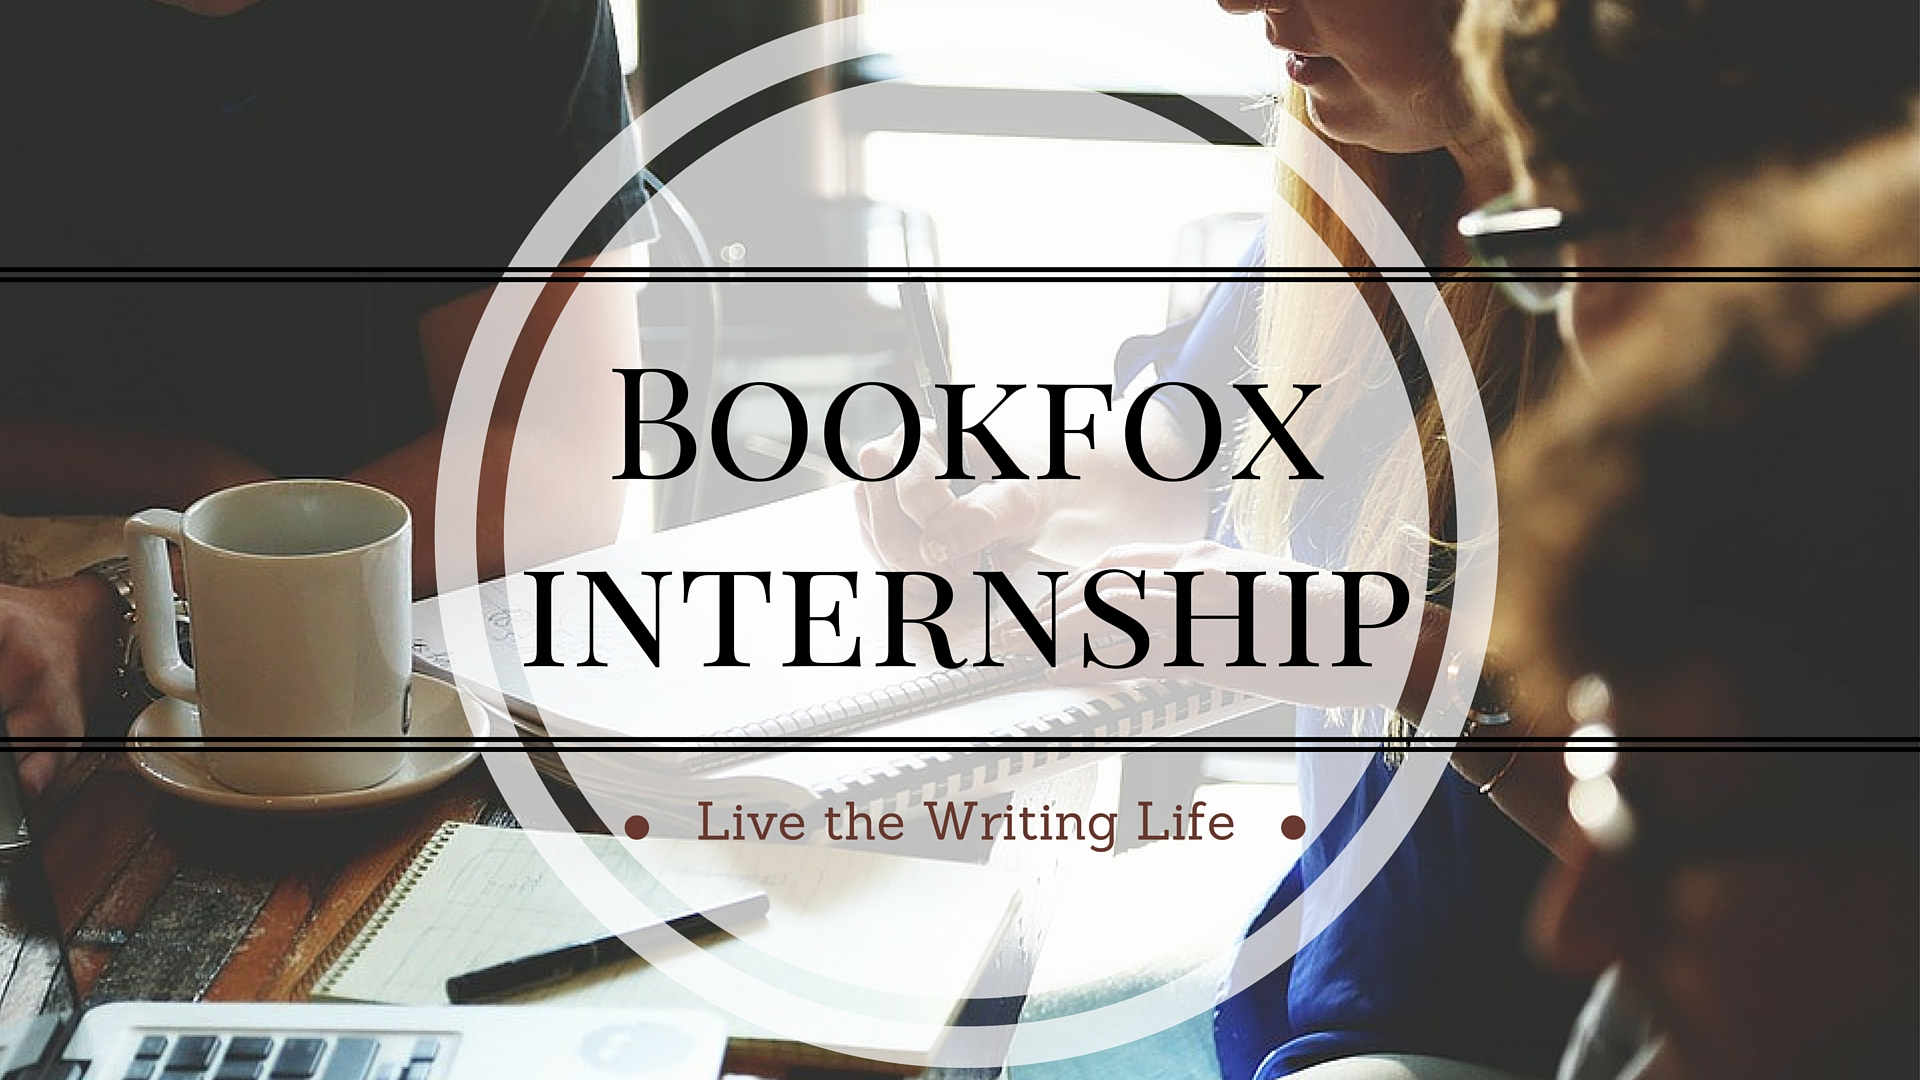 Creative writing intern jobs